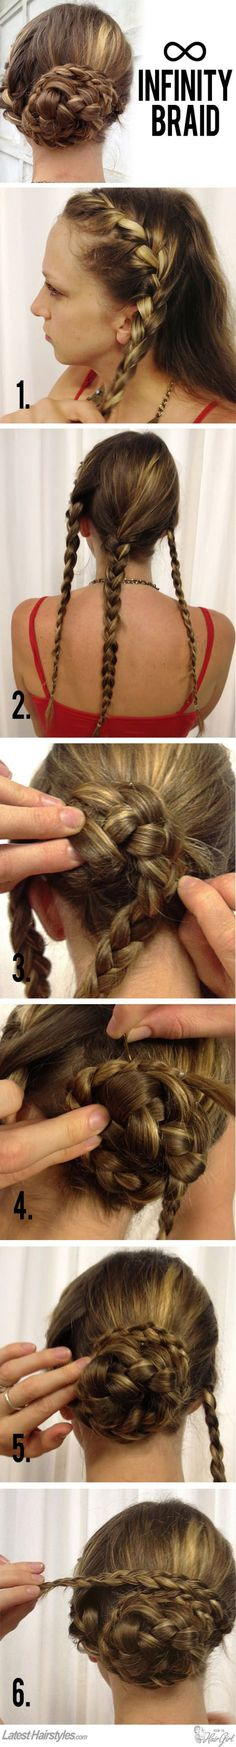 10 Beautiful DIY Hairstyles to Wear to a Wedding - #updo #braids